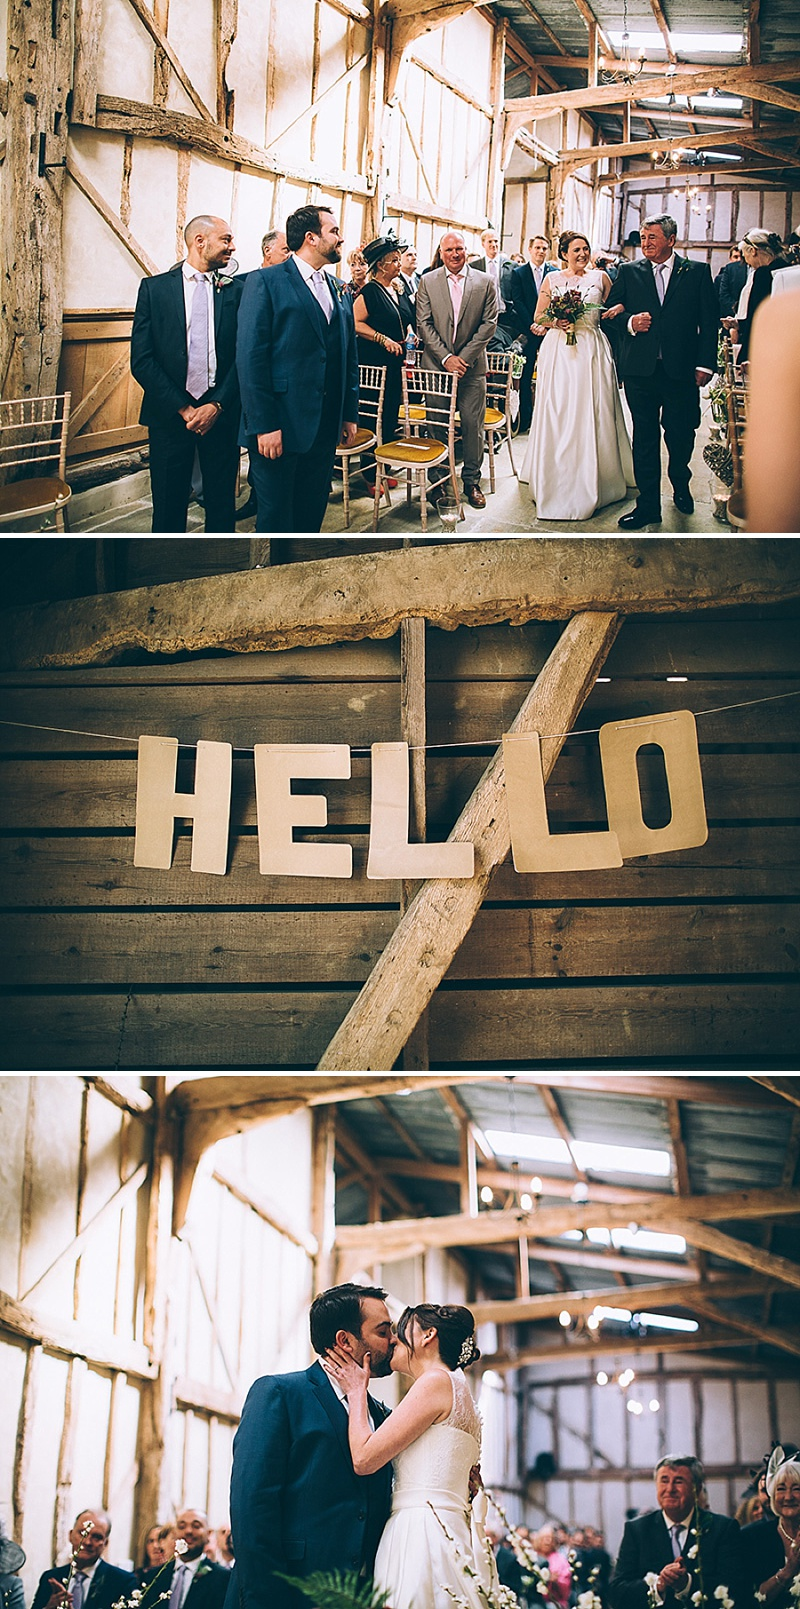 A wedding at Alpheton Hall Barns in Suffolk with a Jesus Peiro ballgown dress navy bridesmaids and DIY_0155